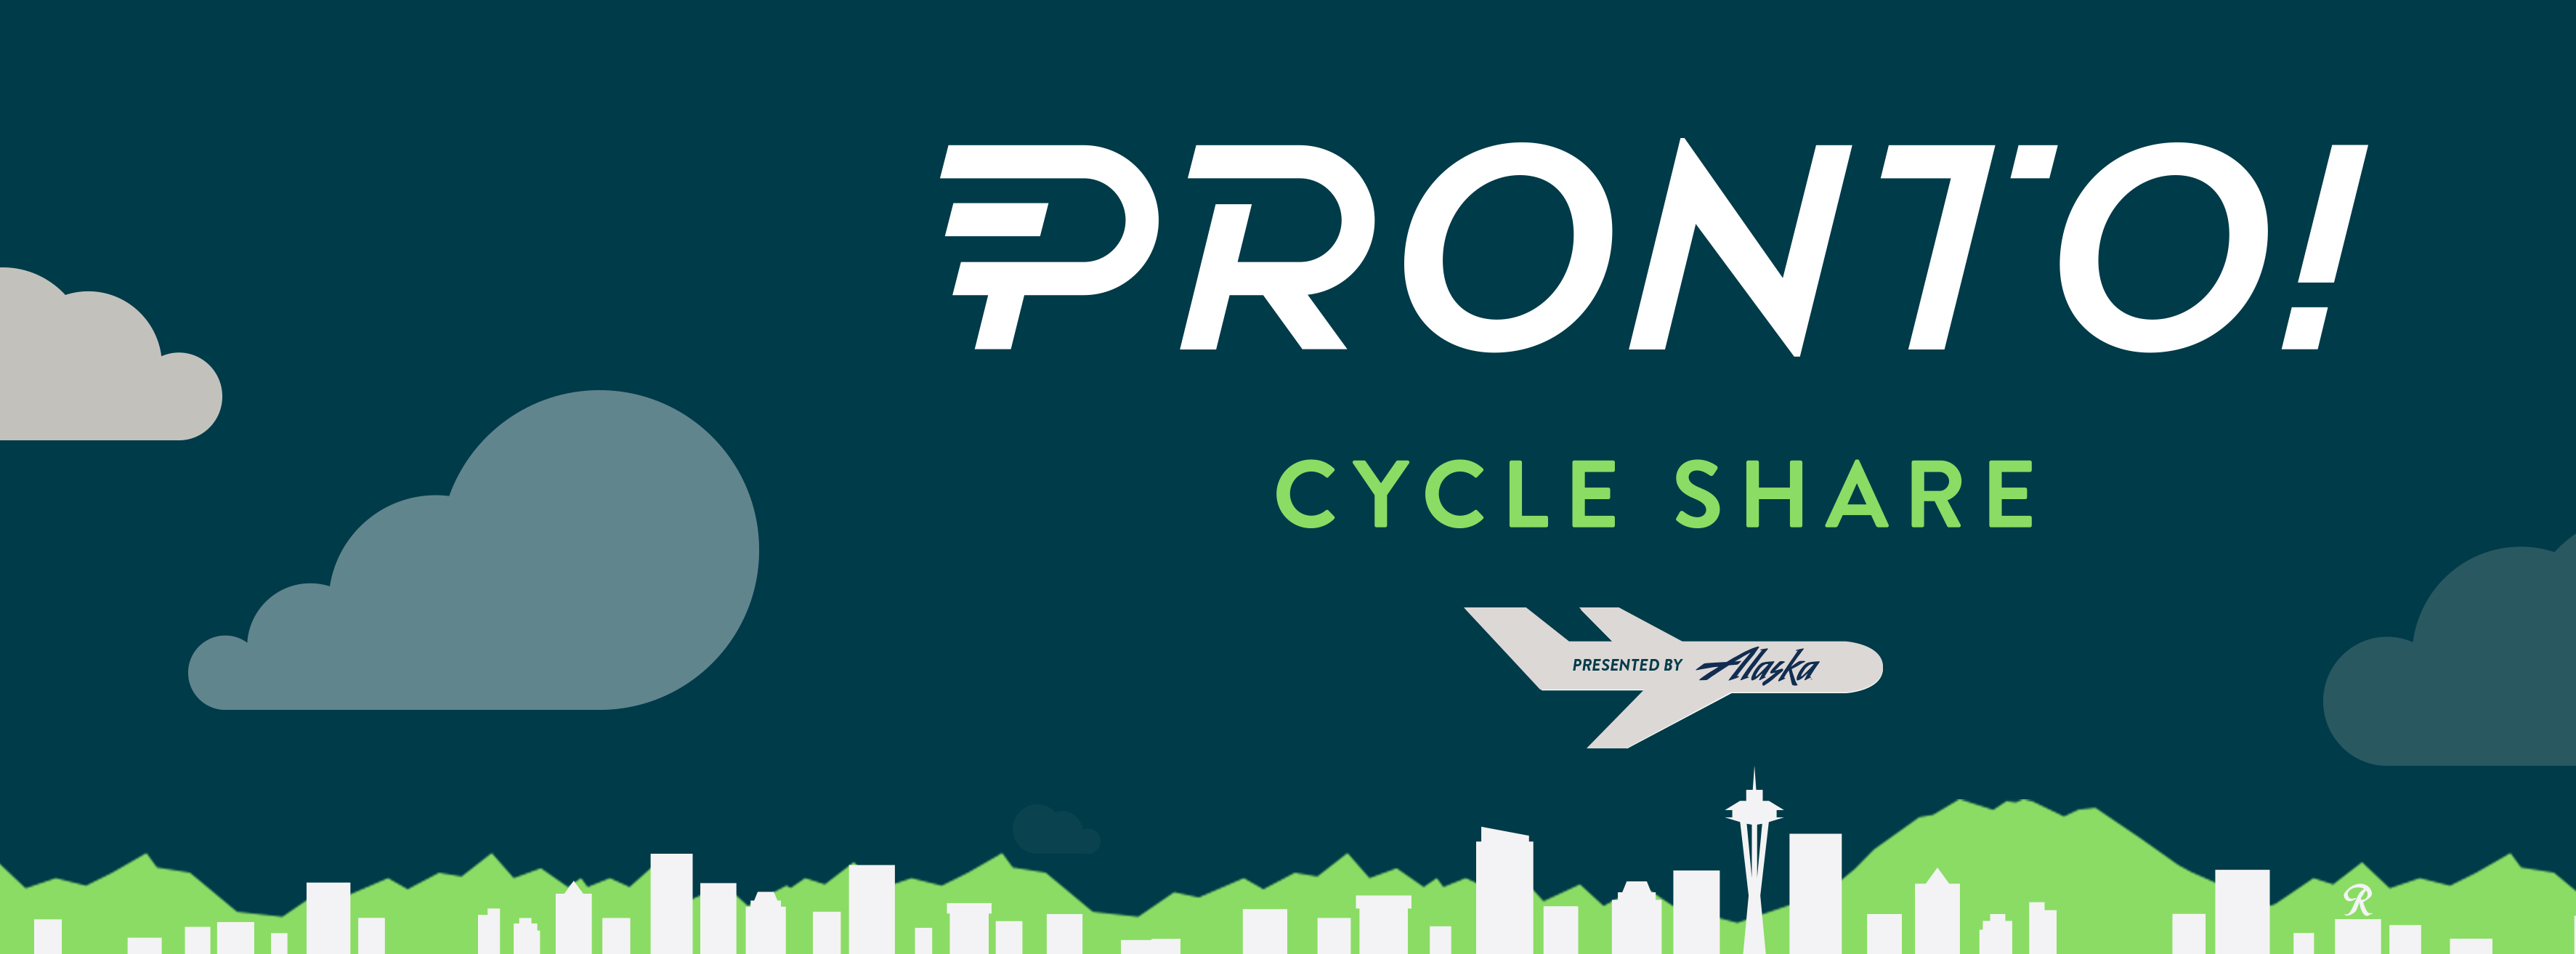 Pronto Cycle Share